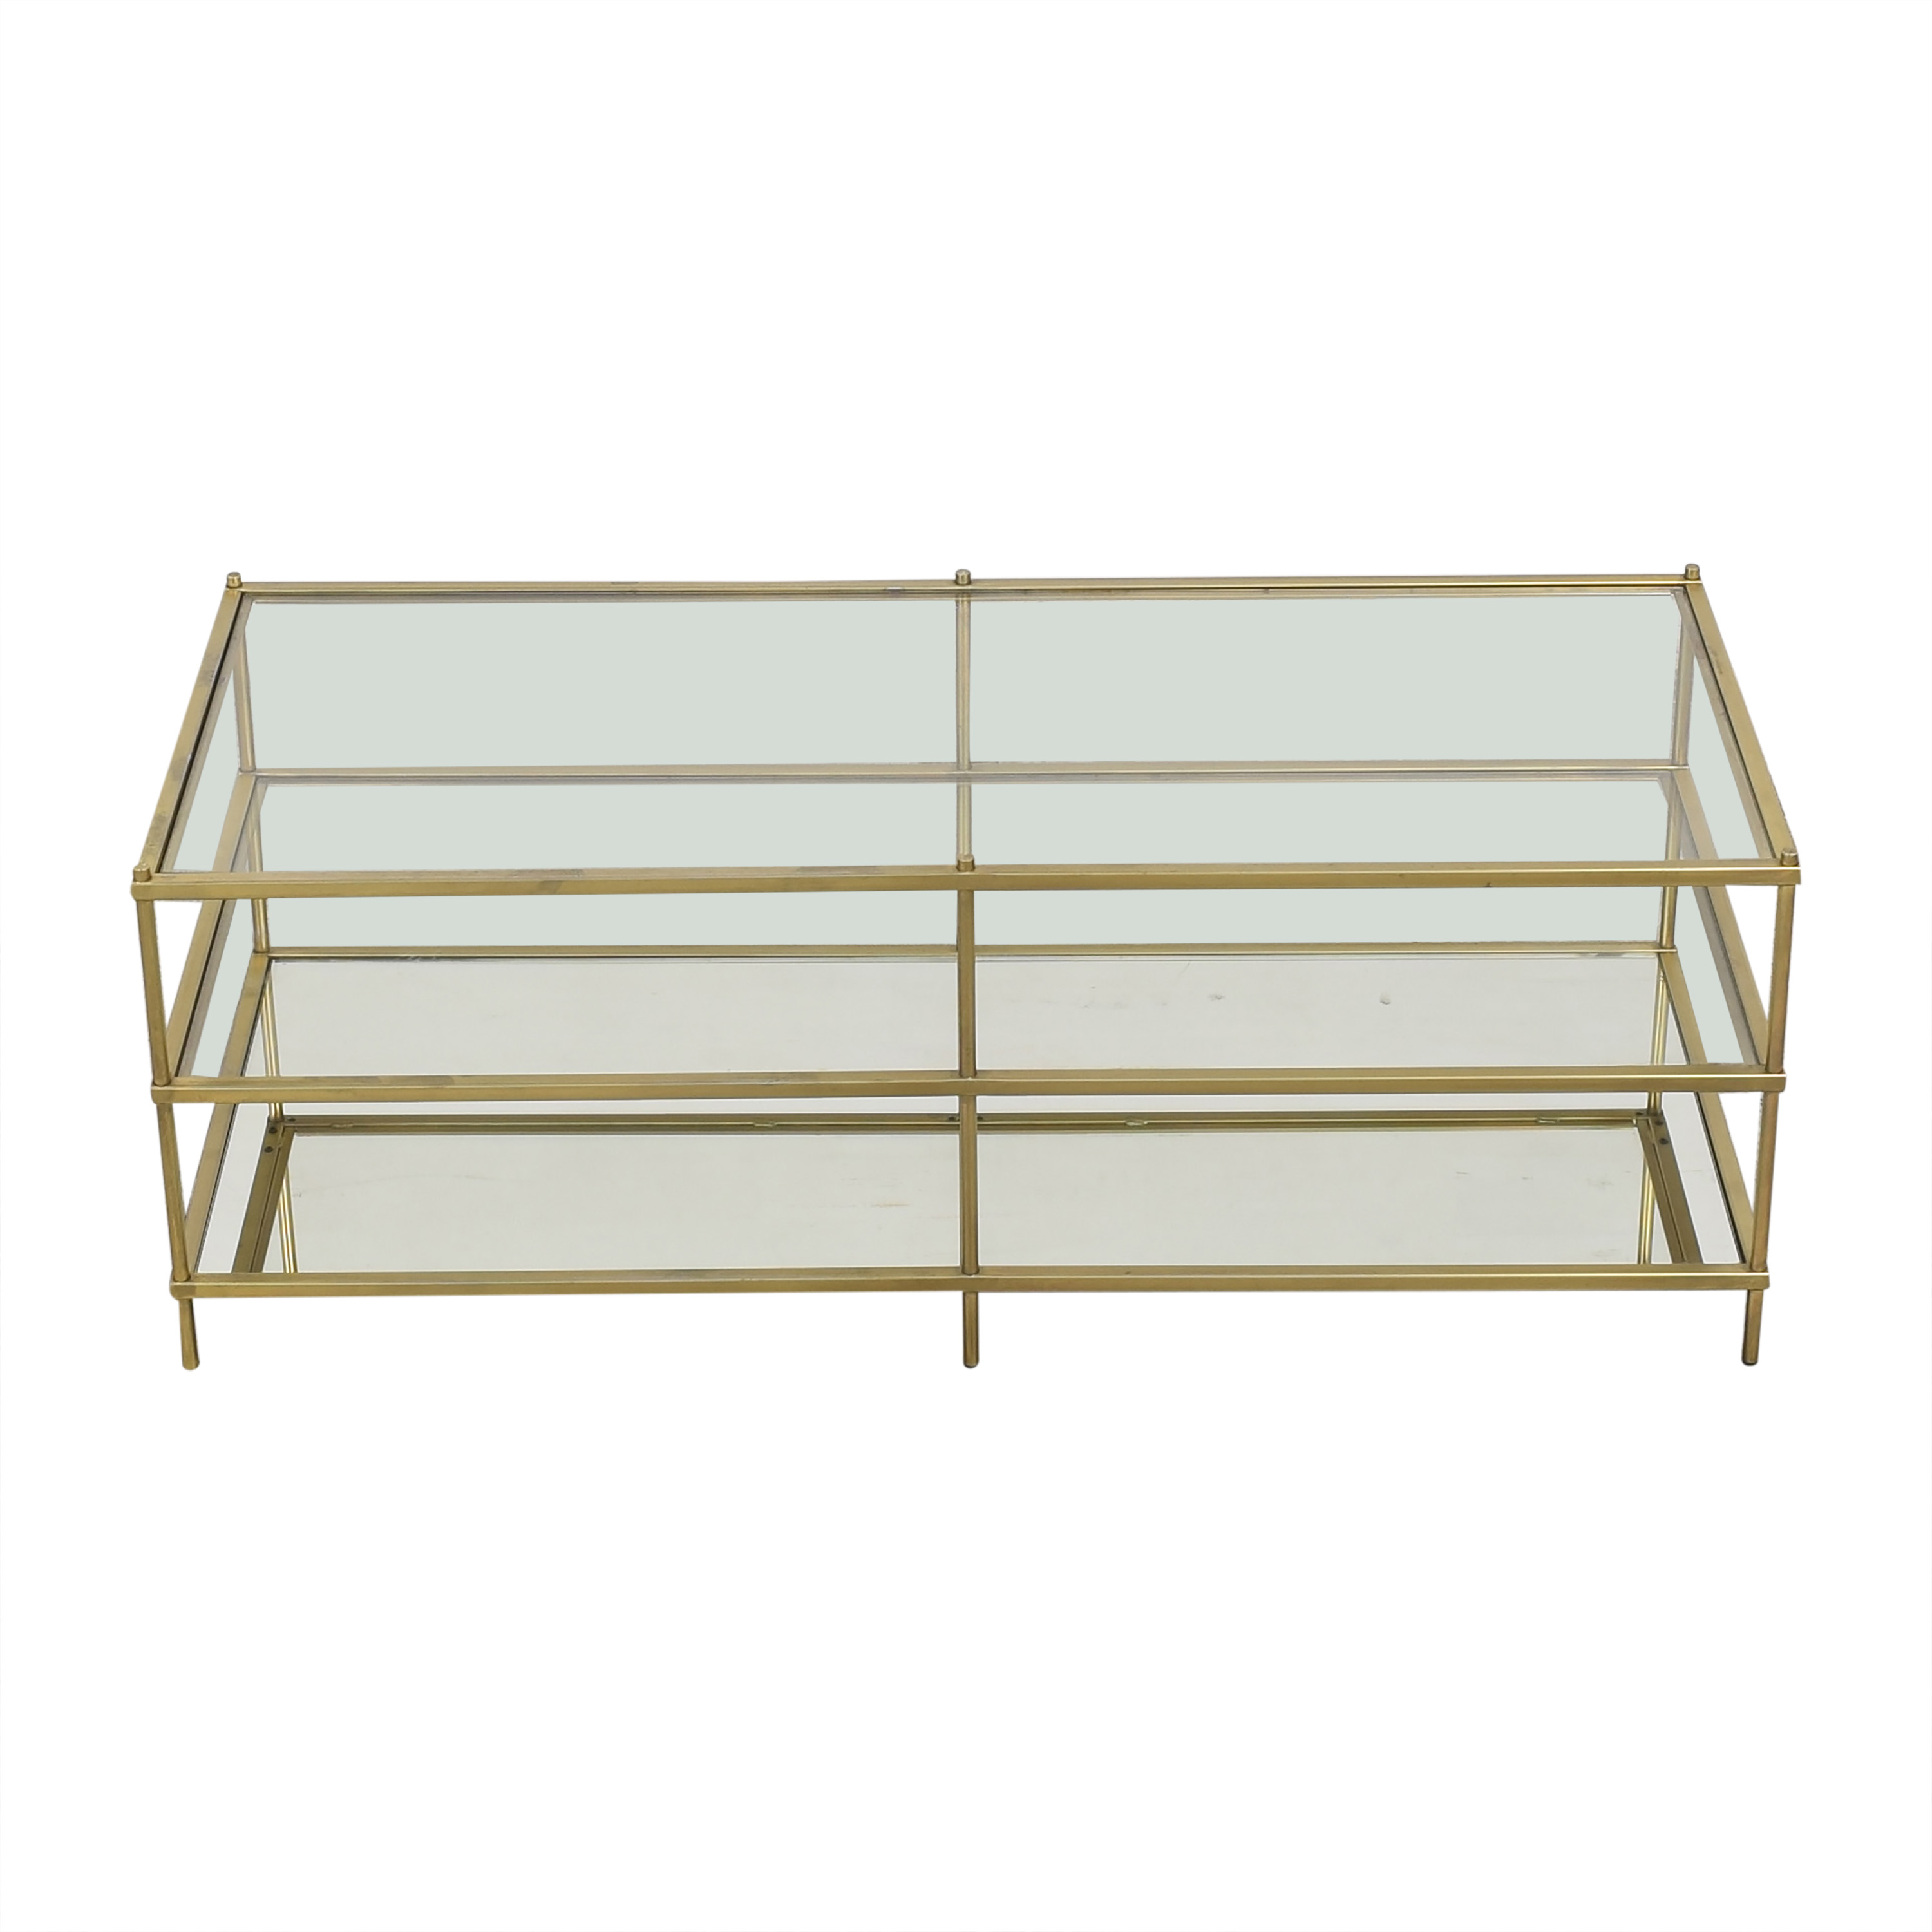 West Elm West Elm Terrace Coffee Table second hand